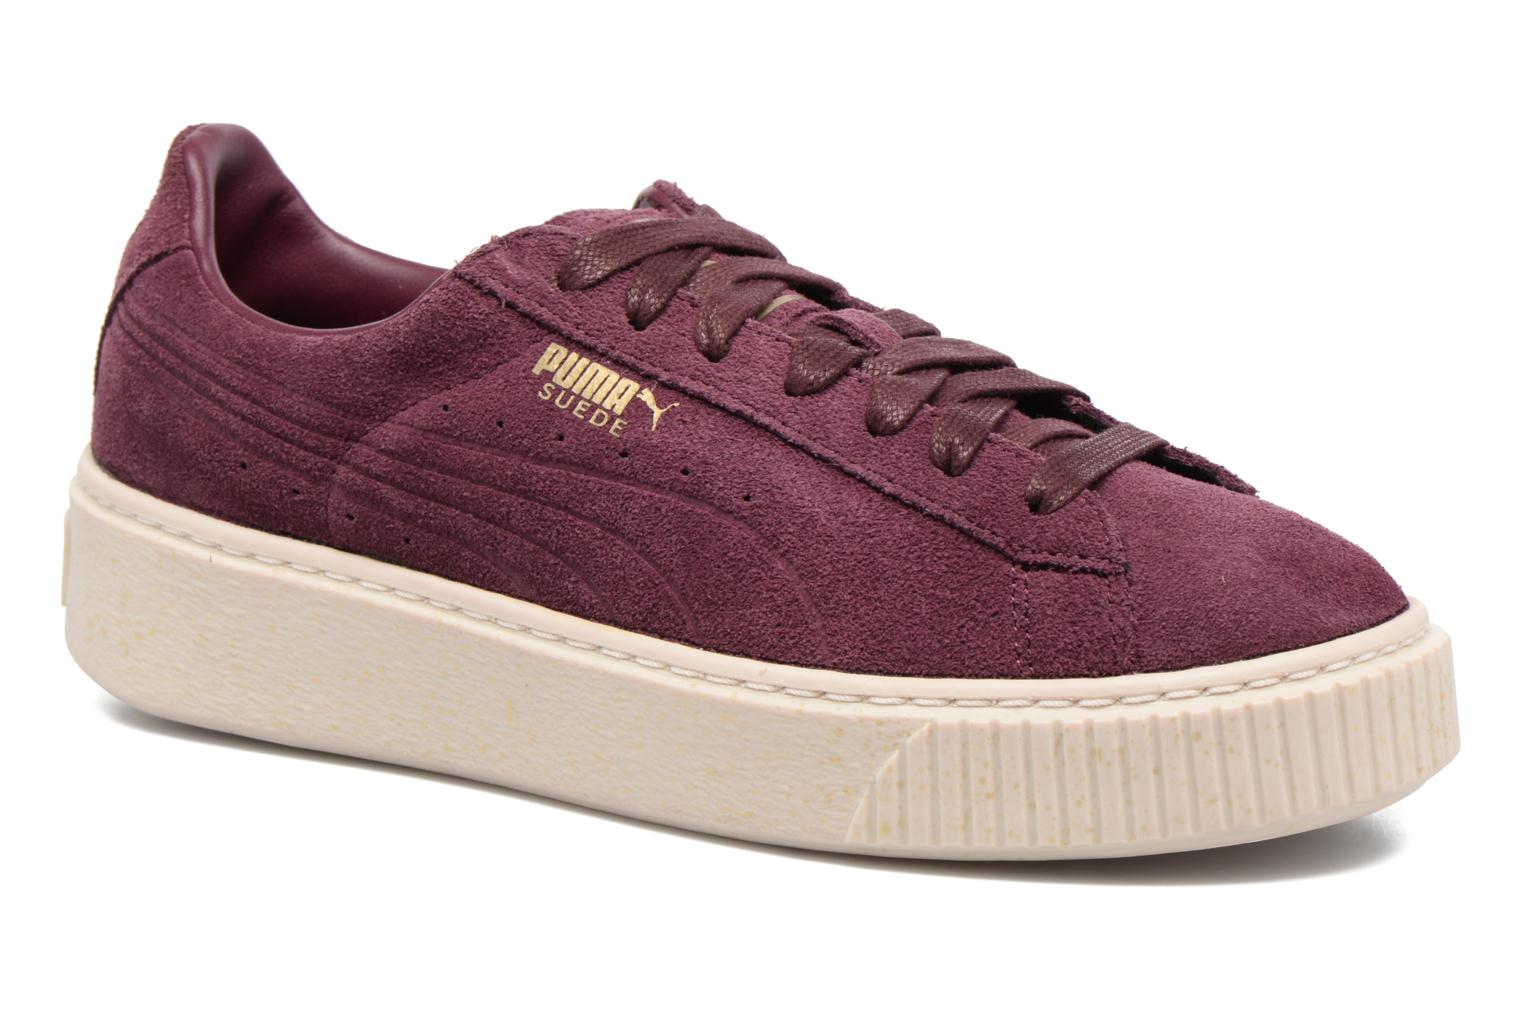 puma basket bordeaux